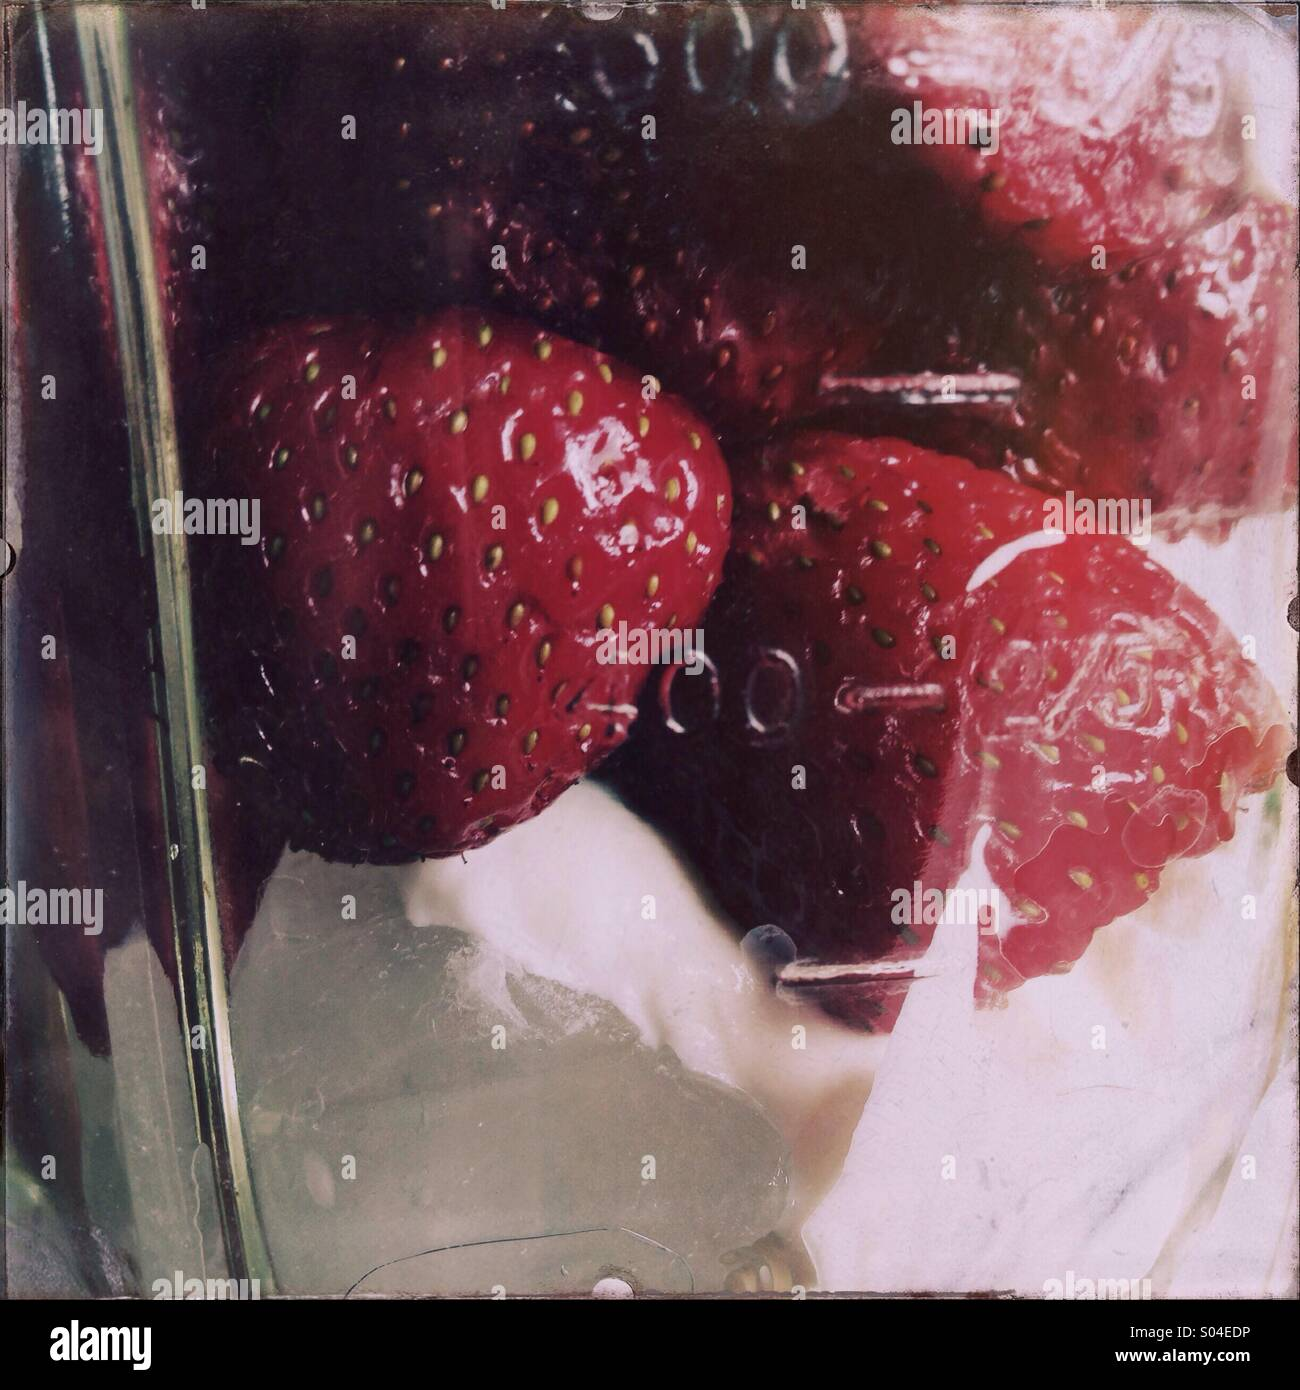 Strawberries are seen in a blender for making a smoothie. - Stock Image